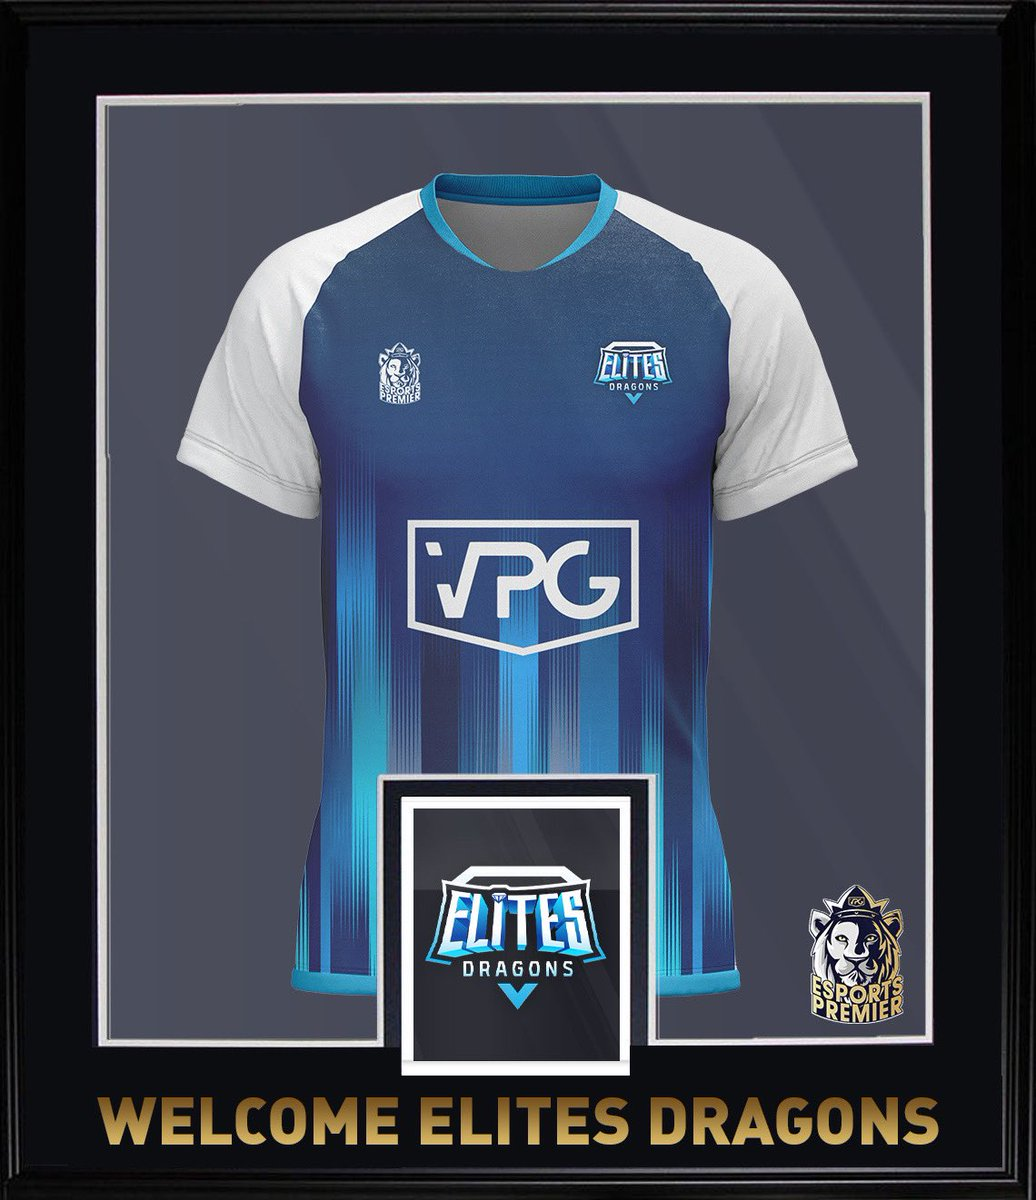 🤩 Welcome @DragonsProClub into the @VPGPremier !   🌍 Nationality: 🇮🇹   🏆 Crowned champions of Premier North, now ready to show their class on the main stage. 🐉   #Elite #FIFA21 #ProClubs #VPG https://t.co/oxYq89r1un